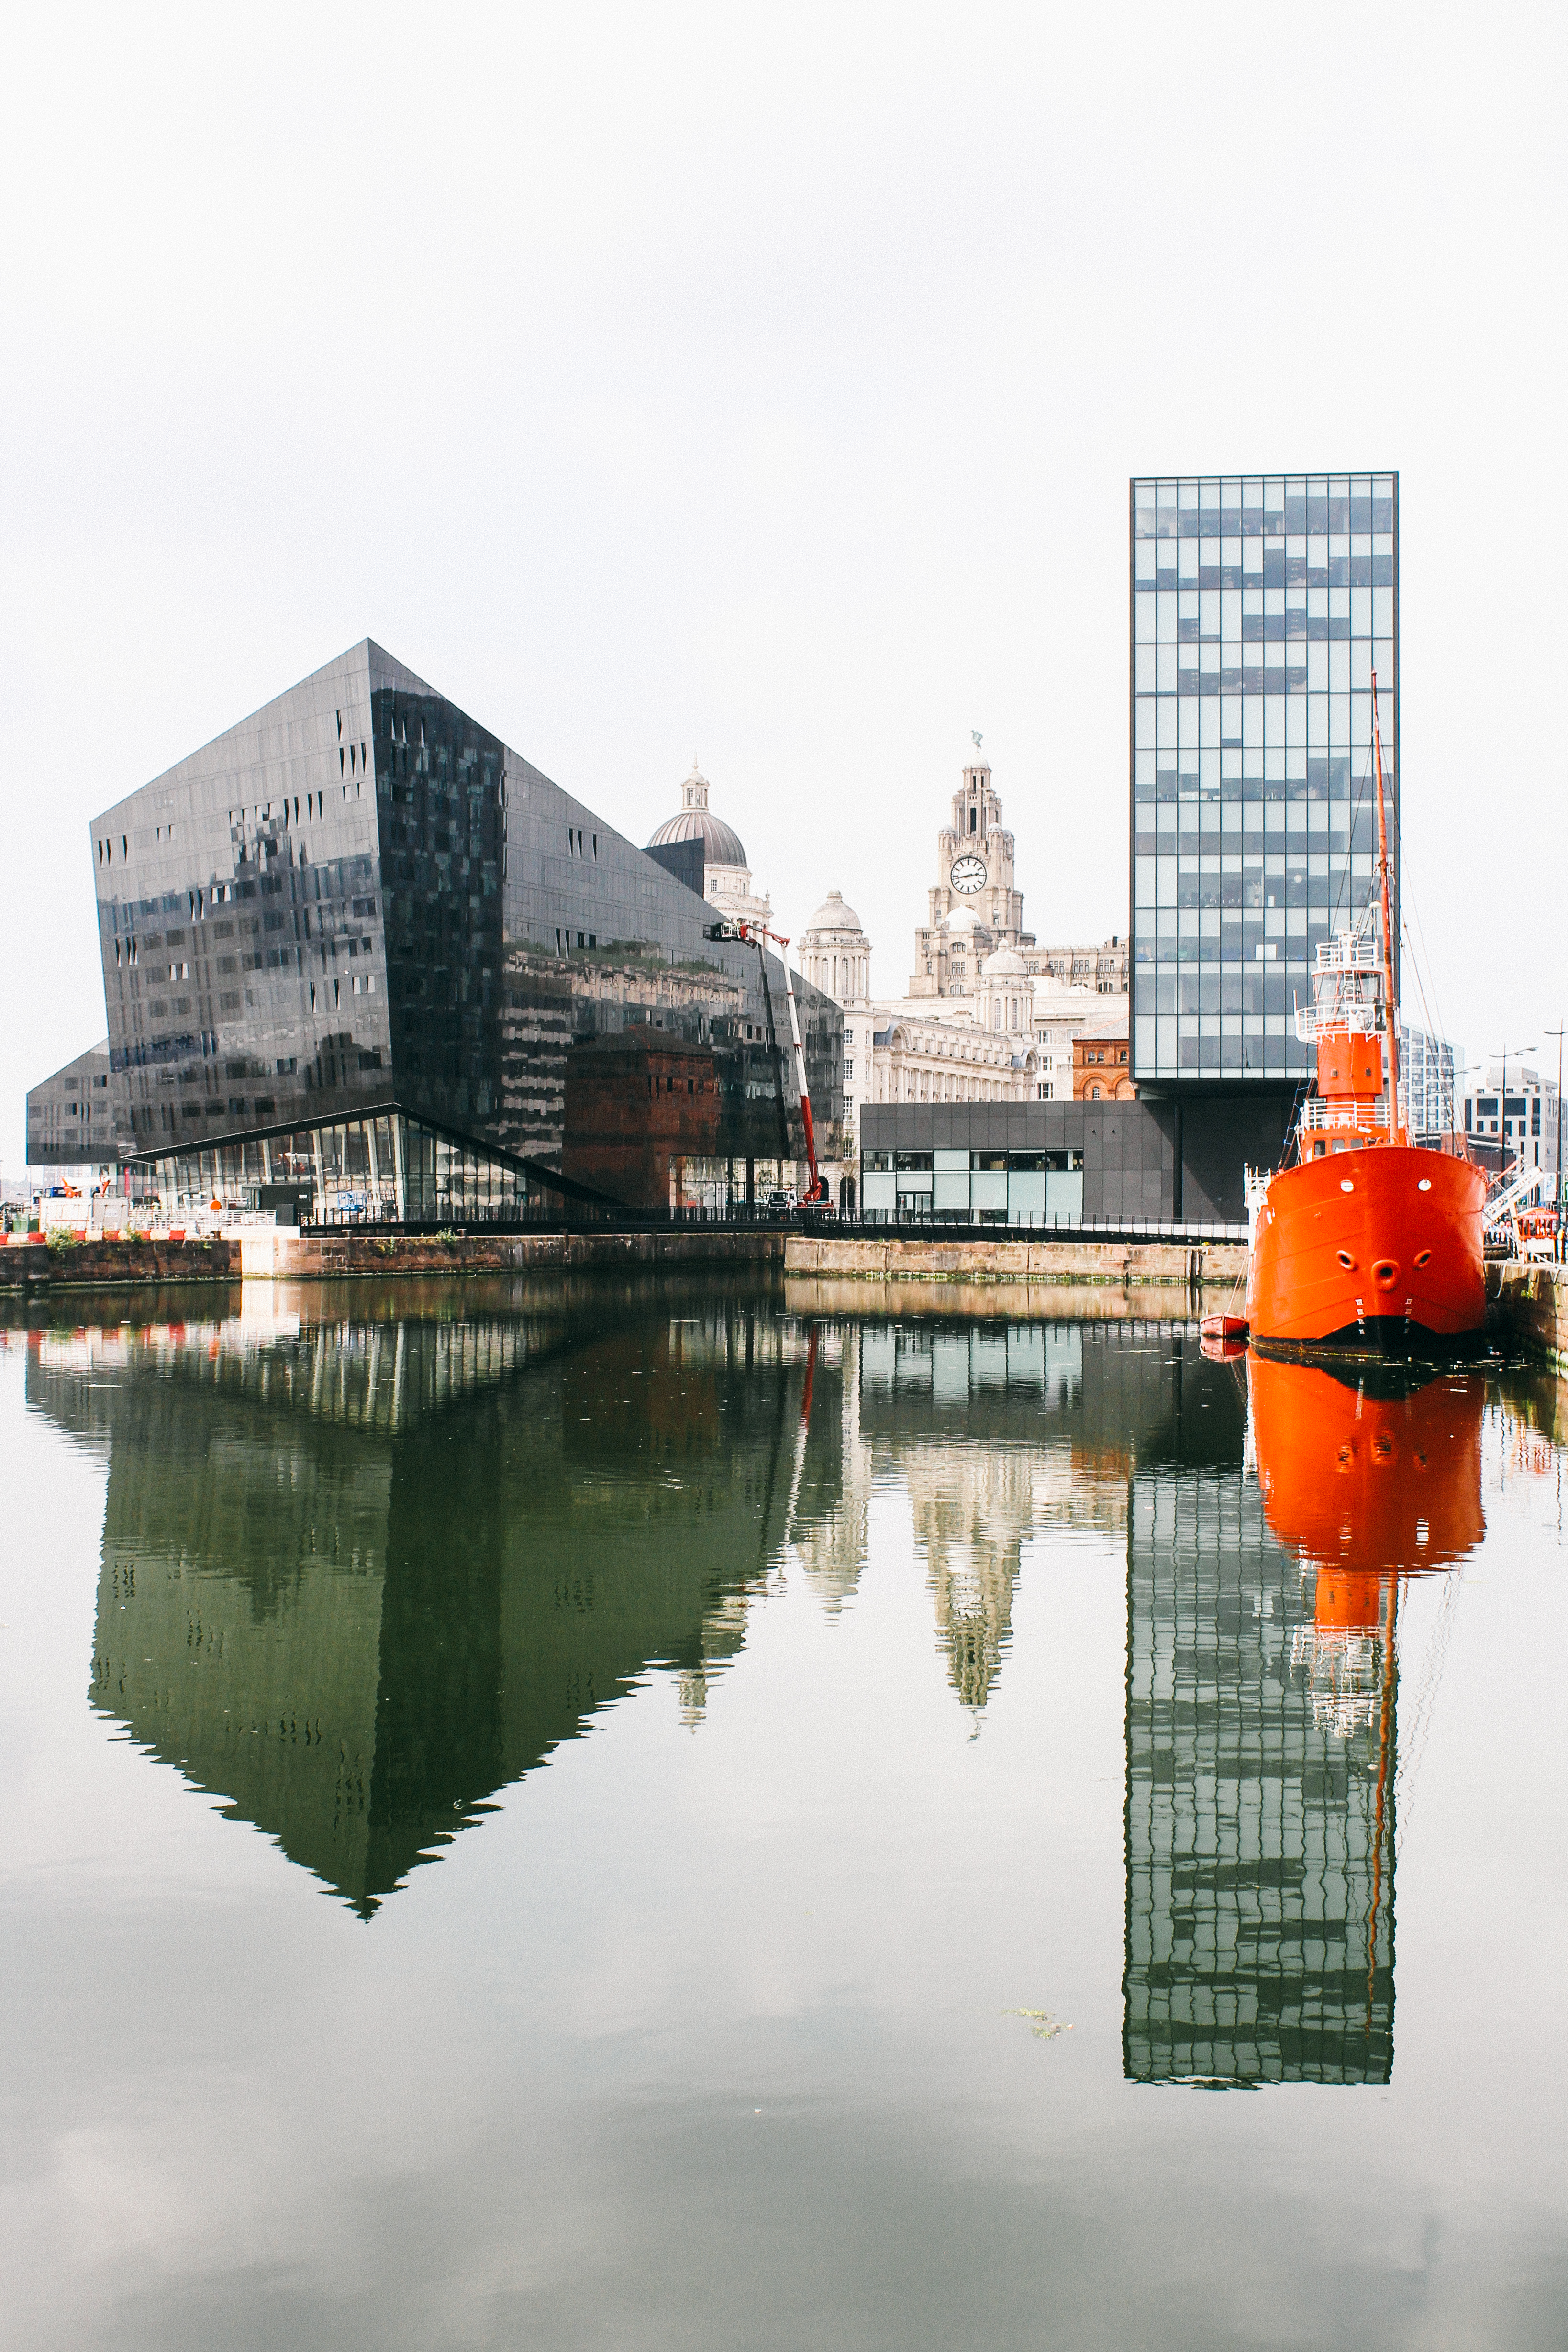 View from the Albert Dock